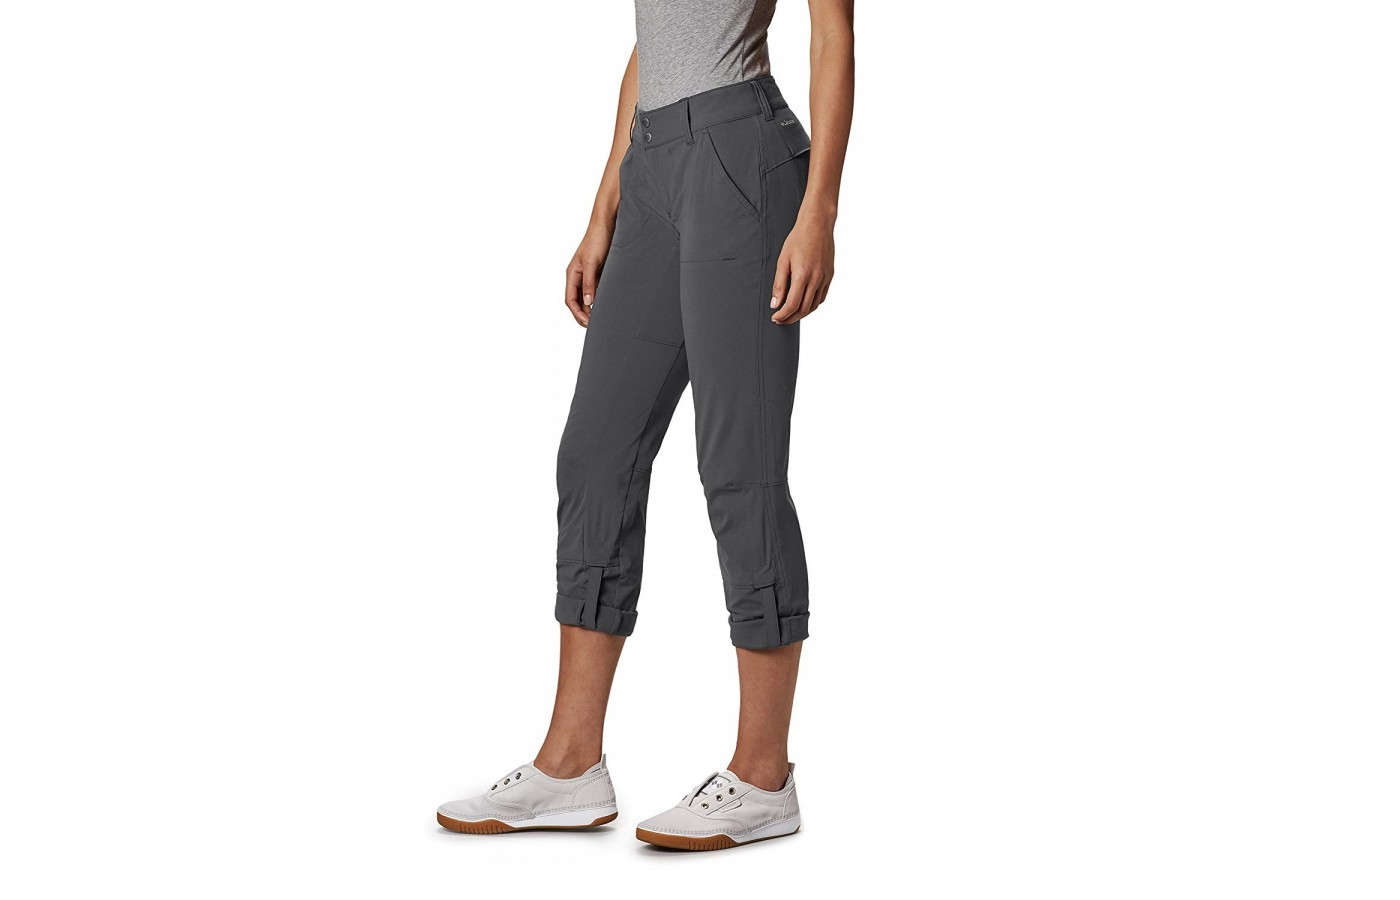 The Columbia Saturday Trail Pant offers roll-up legs for even further breathability and comfort.